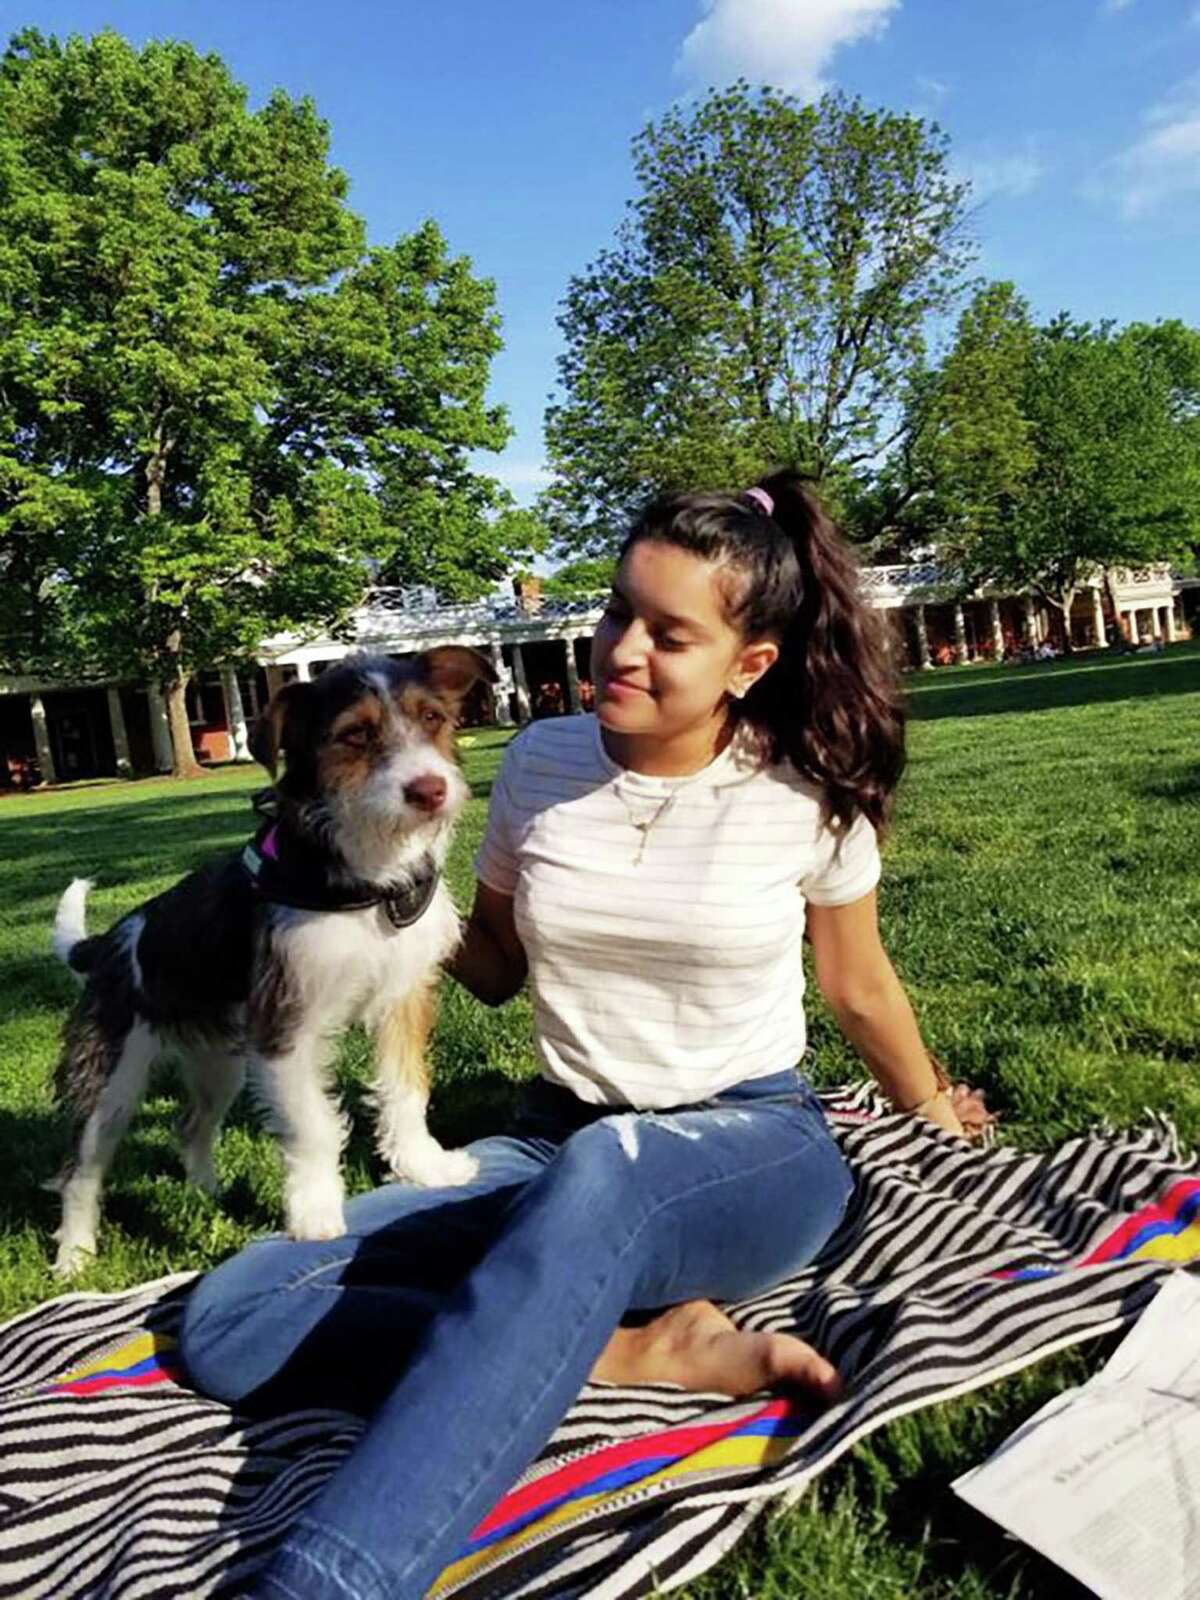 Natalie Romero relaxes with her 1-year-old dog, Luna, a Shih Tzu terrier mix, at the University of Virginia after mostly recovering from the August 2017 Charlottesville car attack.